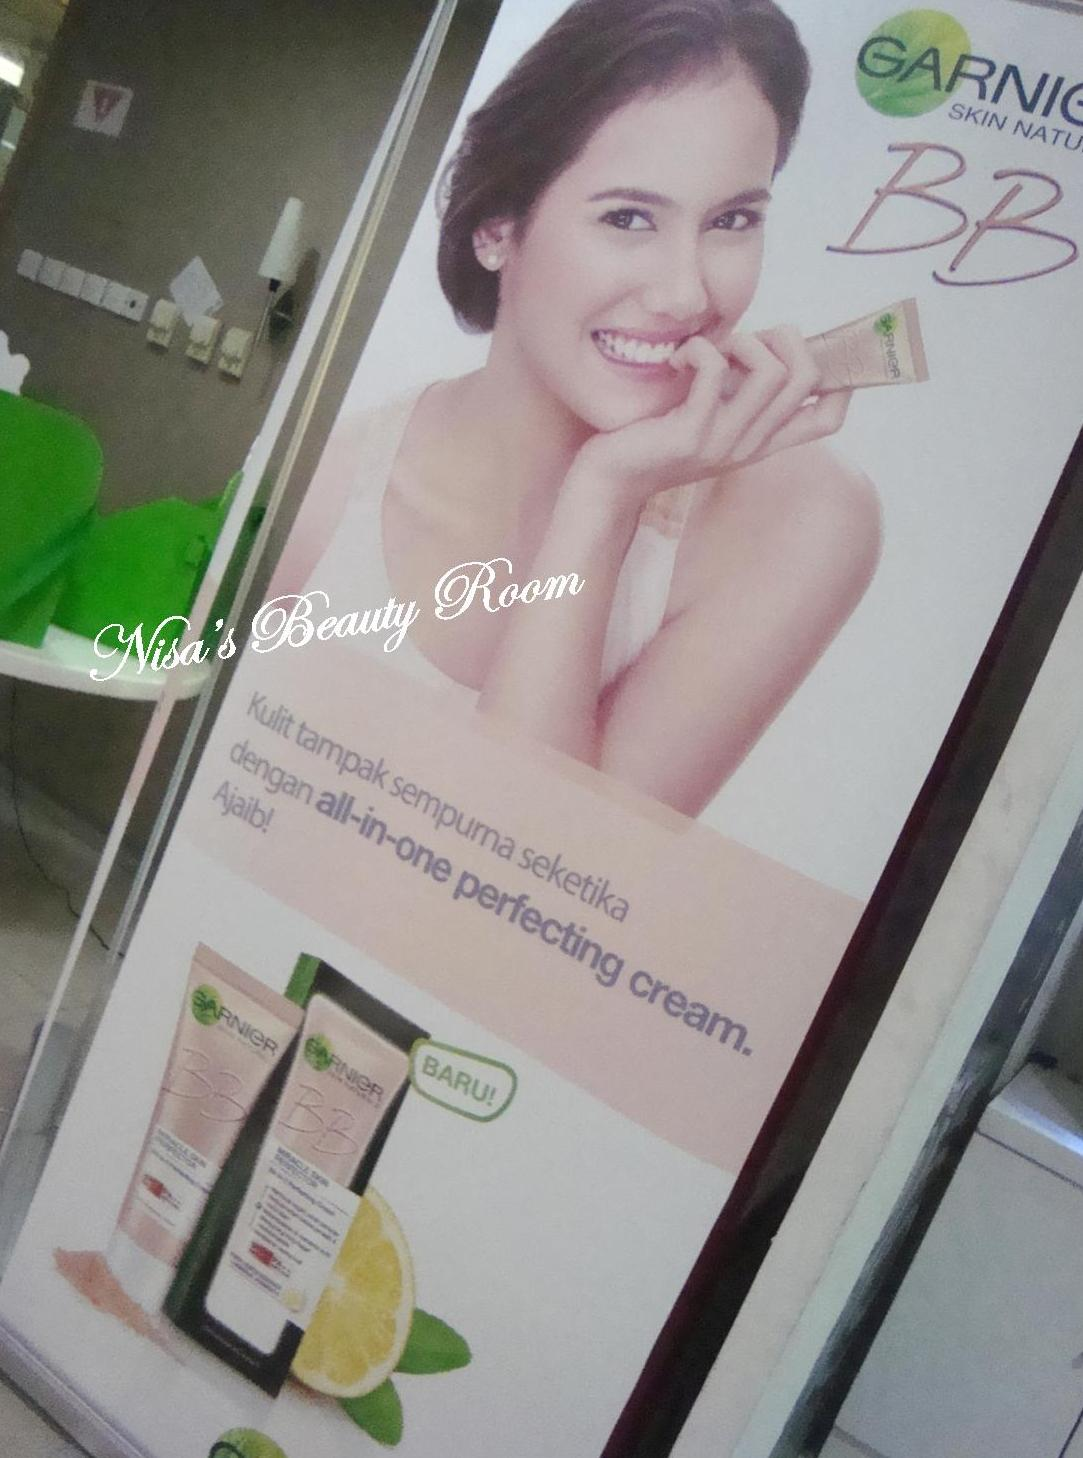 Beauty Event : Garnier BB Cream Launch Event